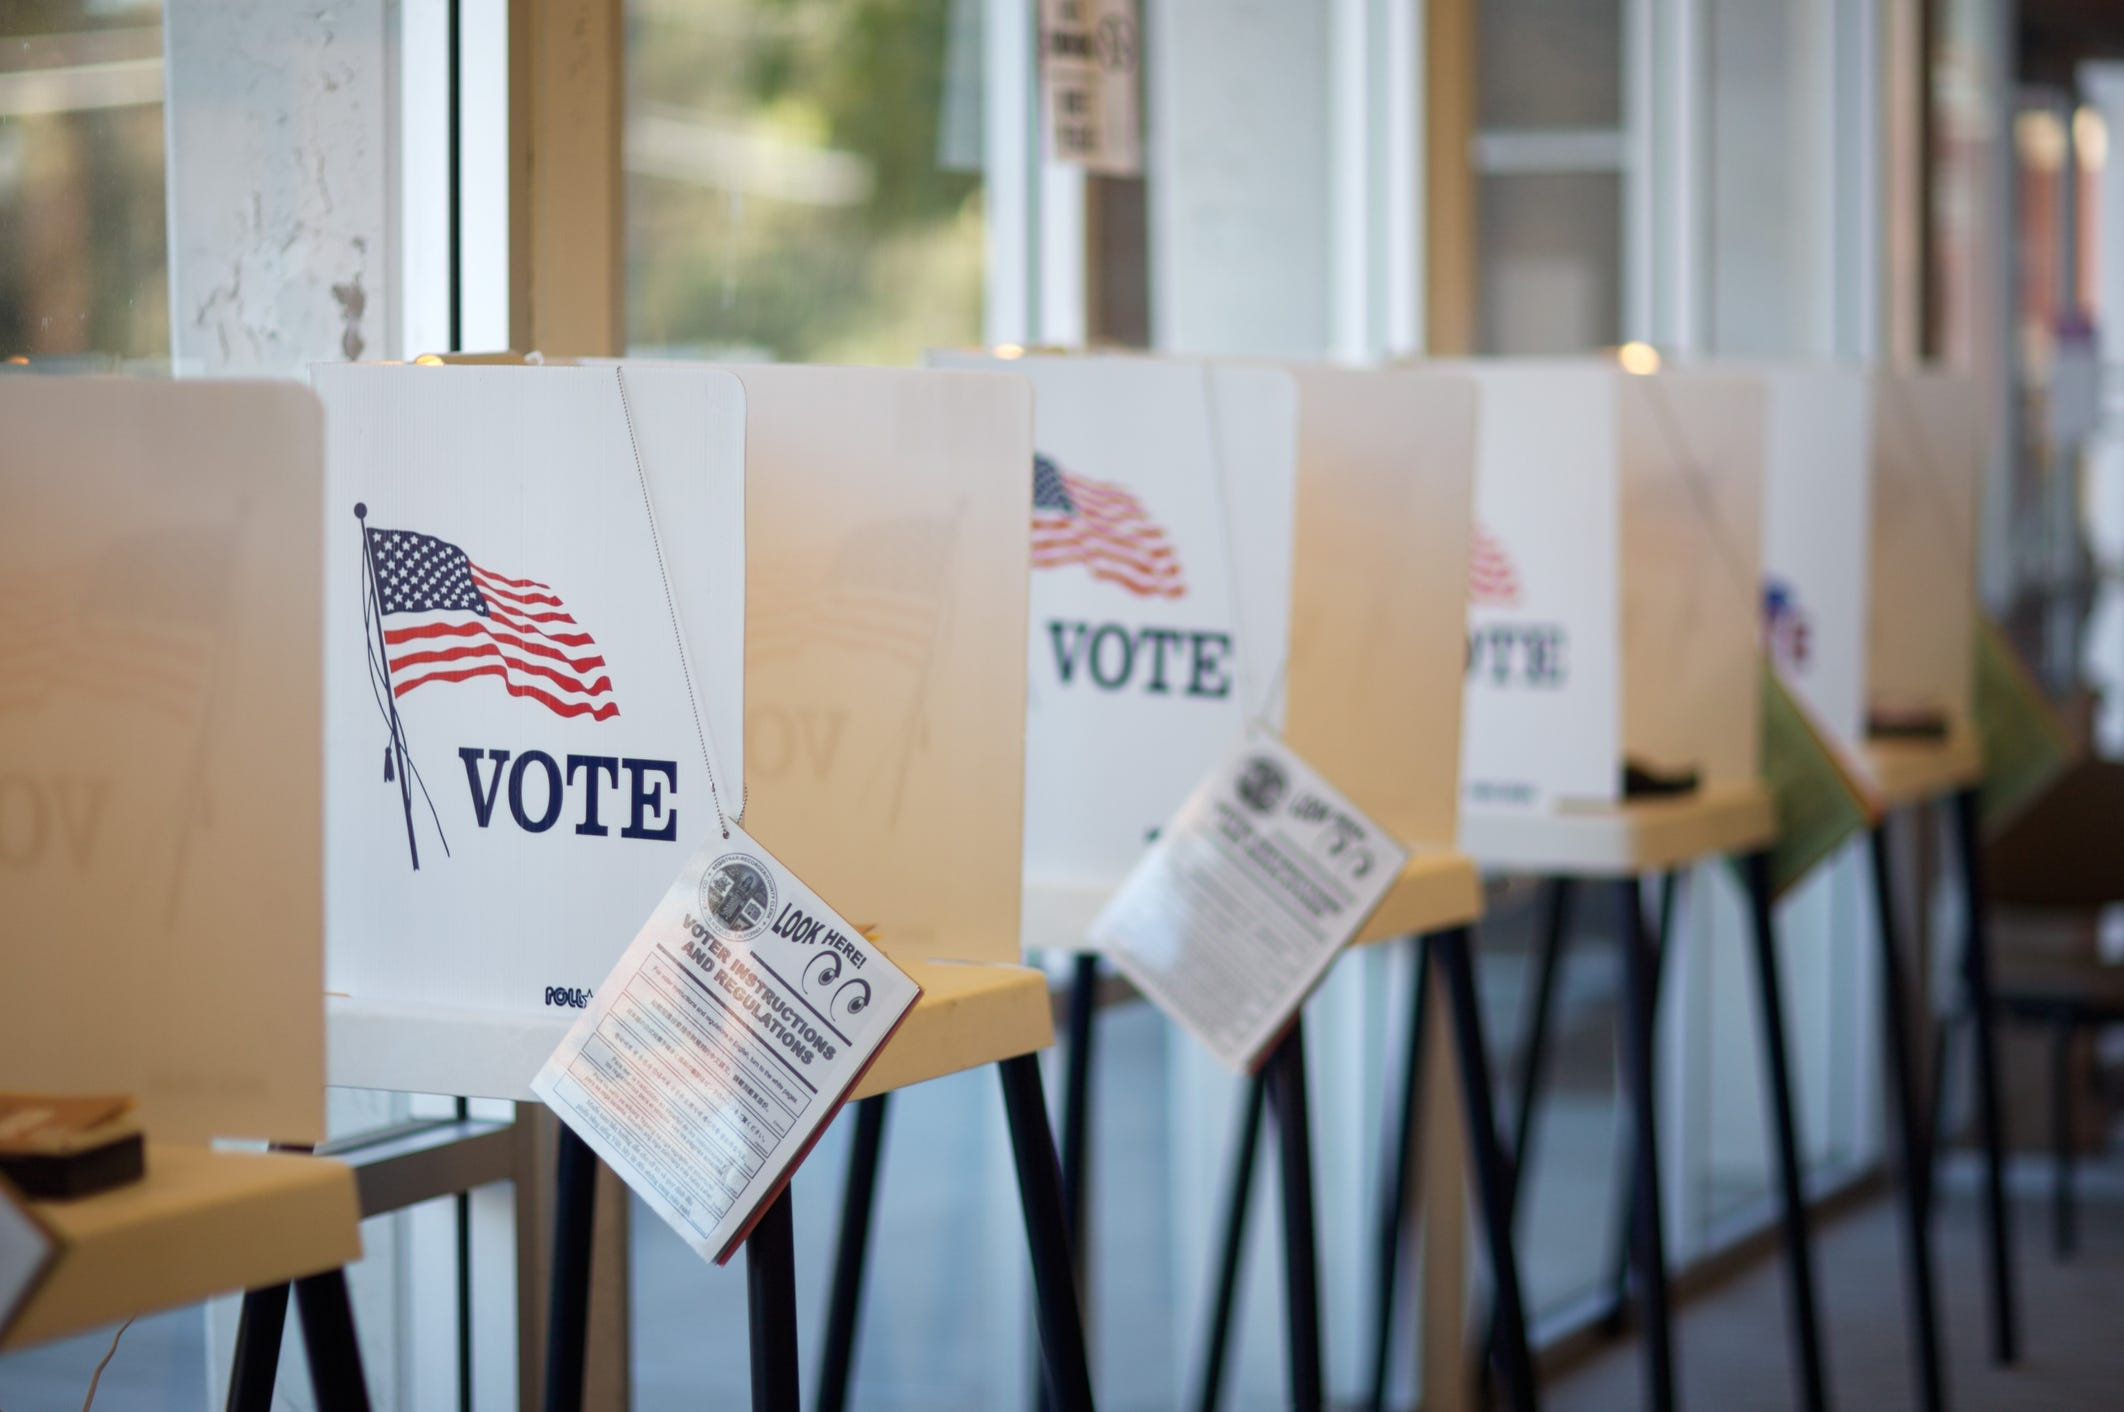 Millennials used to like democracy. Now, most don t trust it, a Cambridge study suggests.